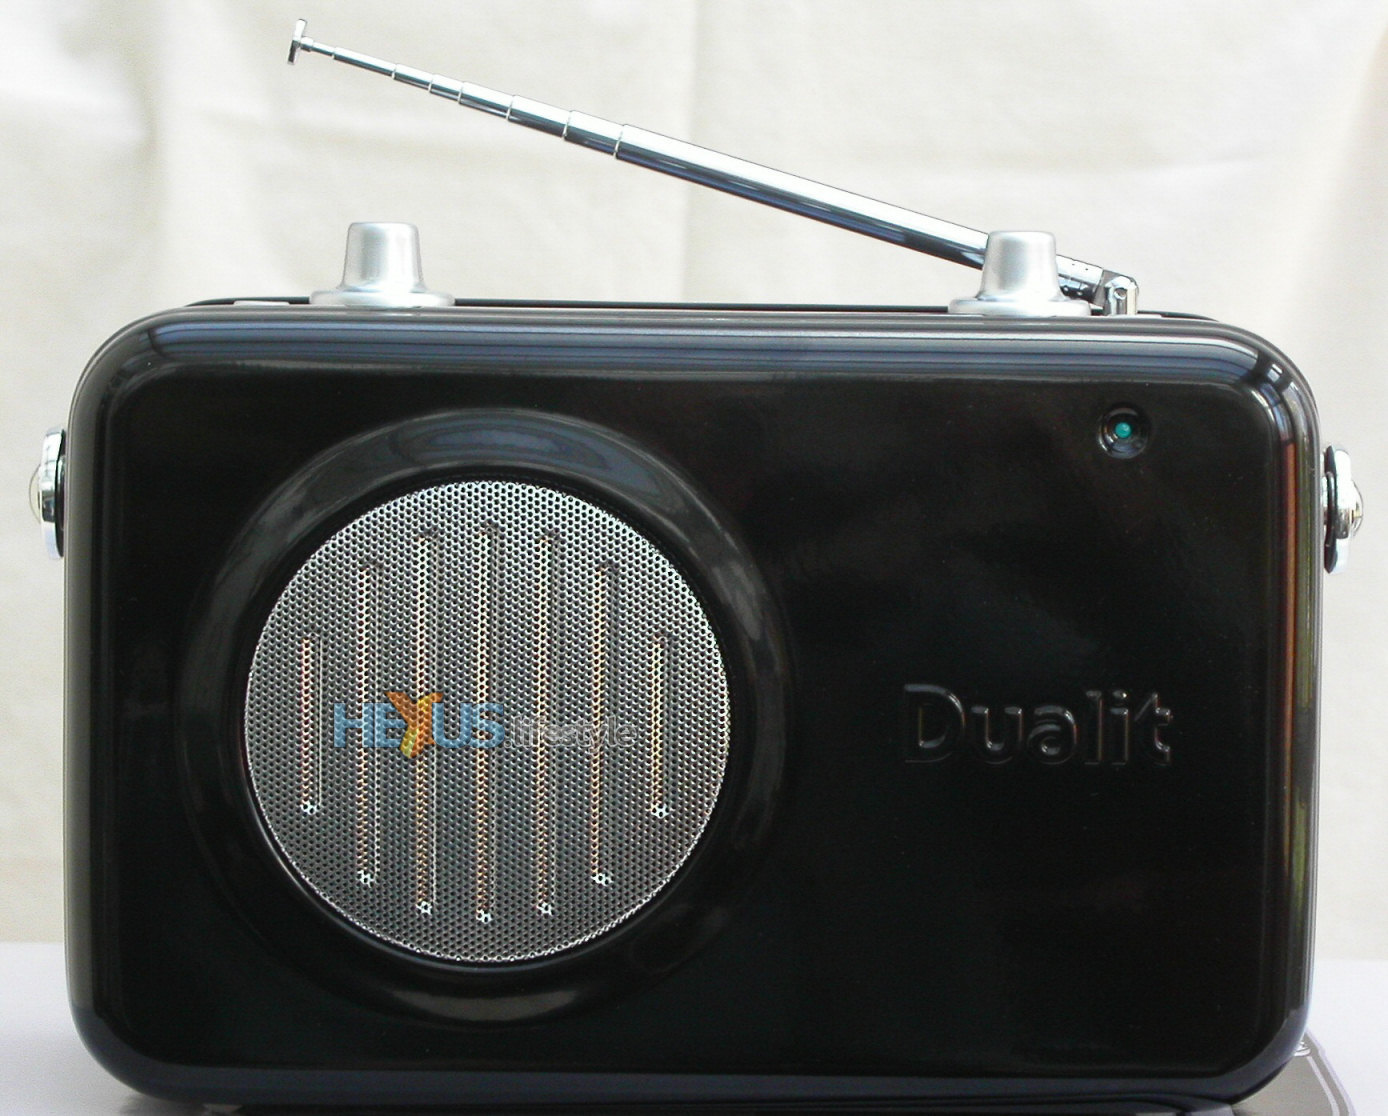 Top Preview - Dualit DAB/FM Kitchen Radio 1388 x 1116 · 300 kB · jpeg